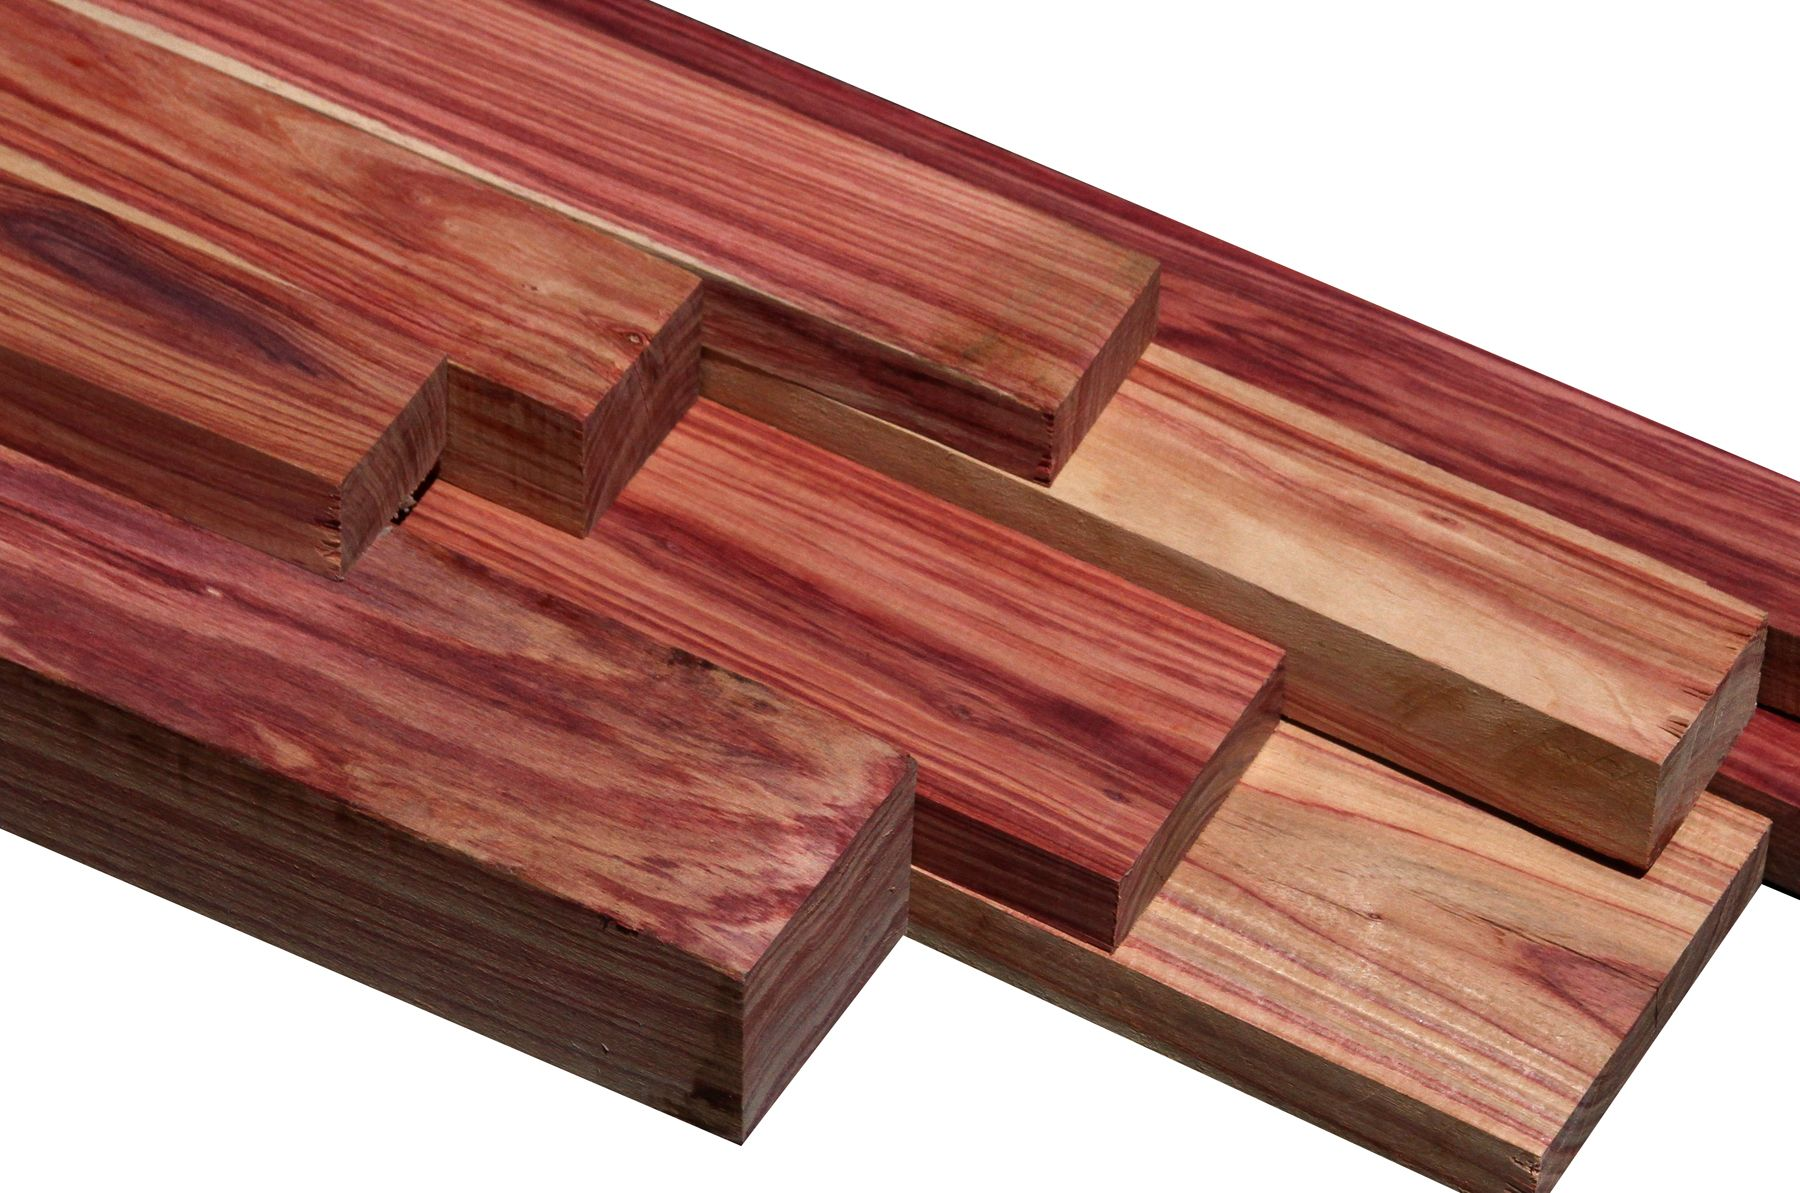 Dalbergia Variabilis Or Dalbergia Frutescens Tulipwood Is Also Called Jacaranda Bahia Rosewood Pink Wood Jacaranda Rosa Wood Beautiful Wood Types Of Wood